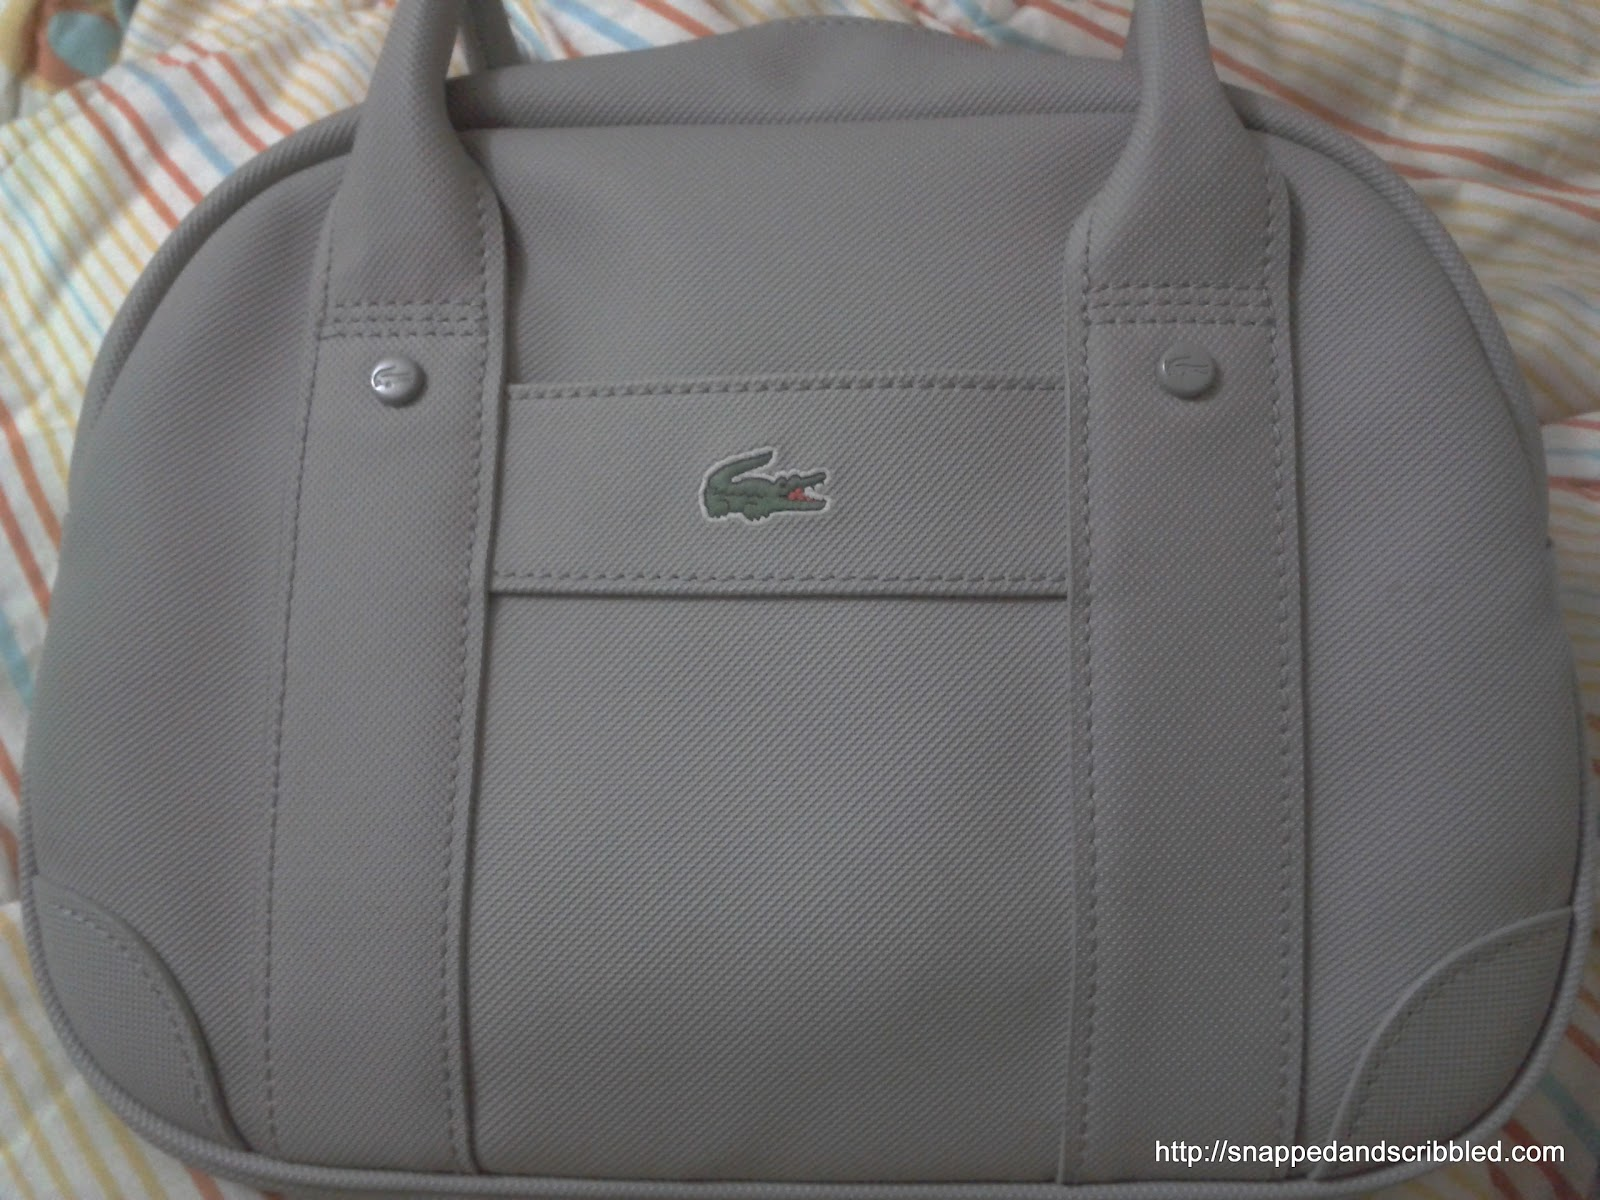 f8724860d53 So I finally decided to buy my first ever Lacoste bag. I wanted the  Shopper's Bag but ended purchasing the Bowler's bag.